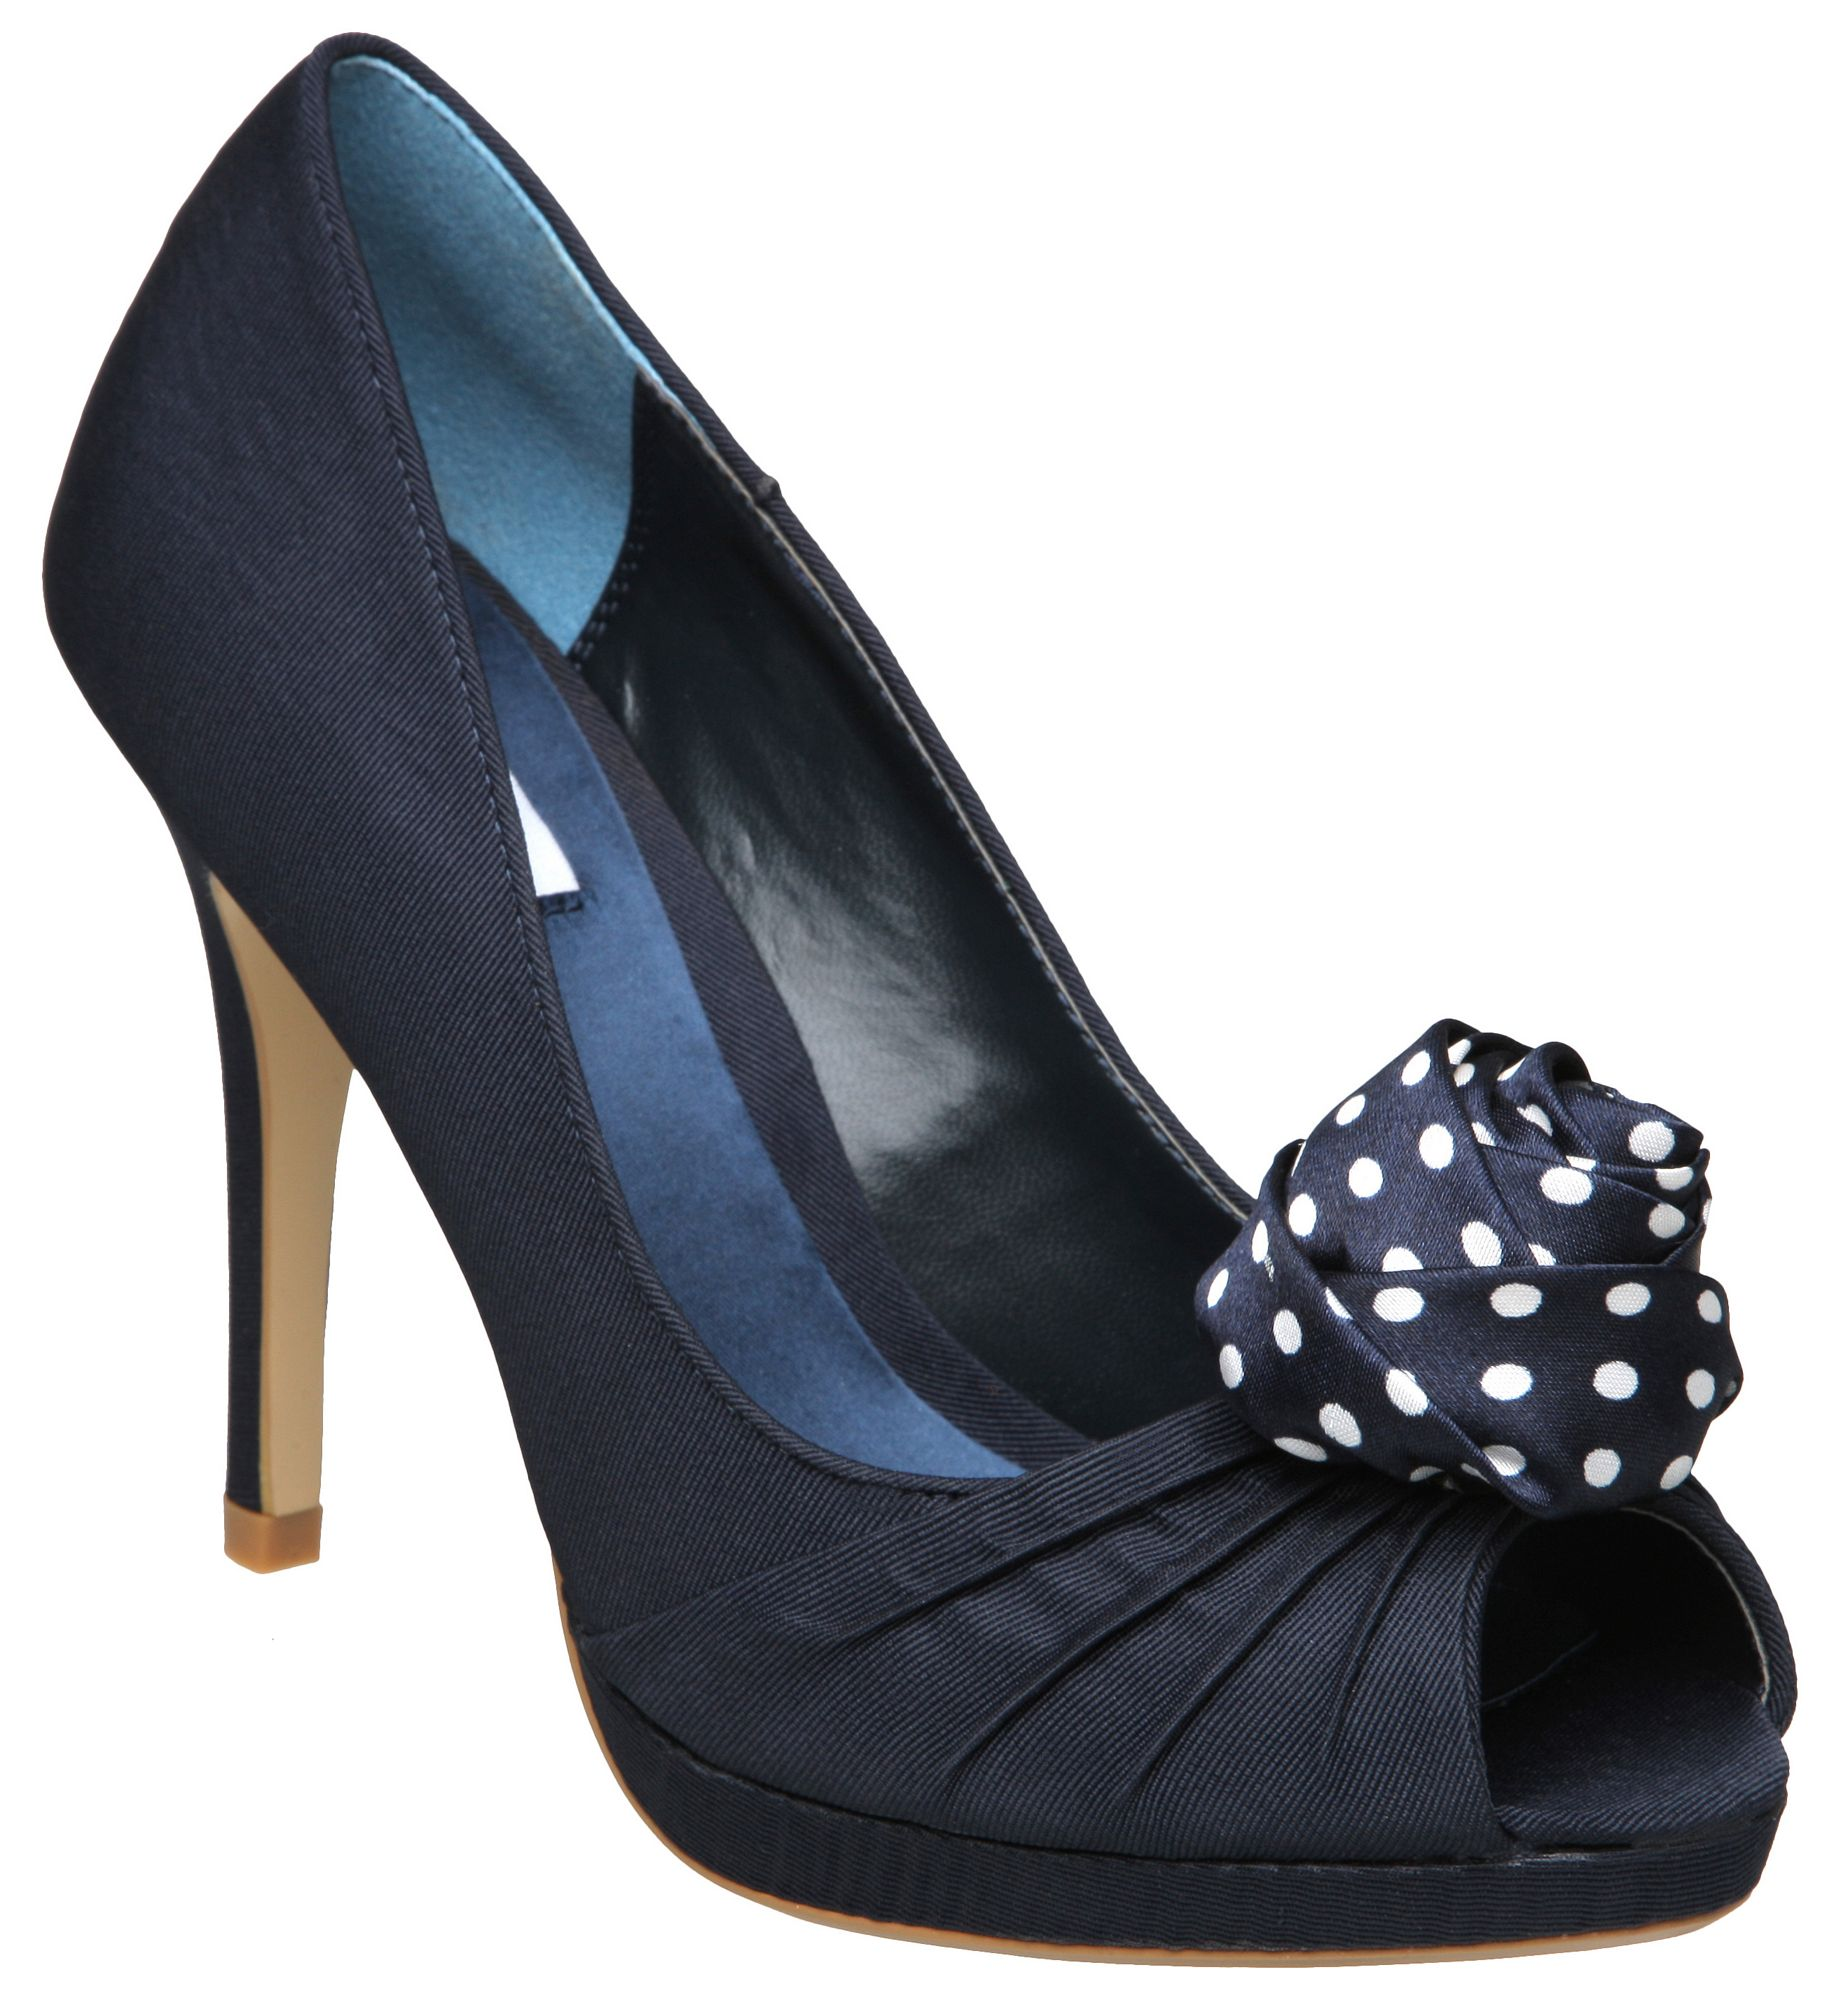 Polka dot shoes are the height of kitsch, which means they provide a lovely accessory to any retro pop-punk or bubblegum pop ensemble. Women's polka dot shoes, most often rubber-soled canvas sneakers or slip-ons, are a good addition to any funky wardrobe looking to vary its palette of patterns.